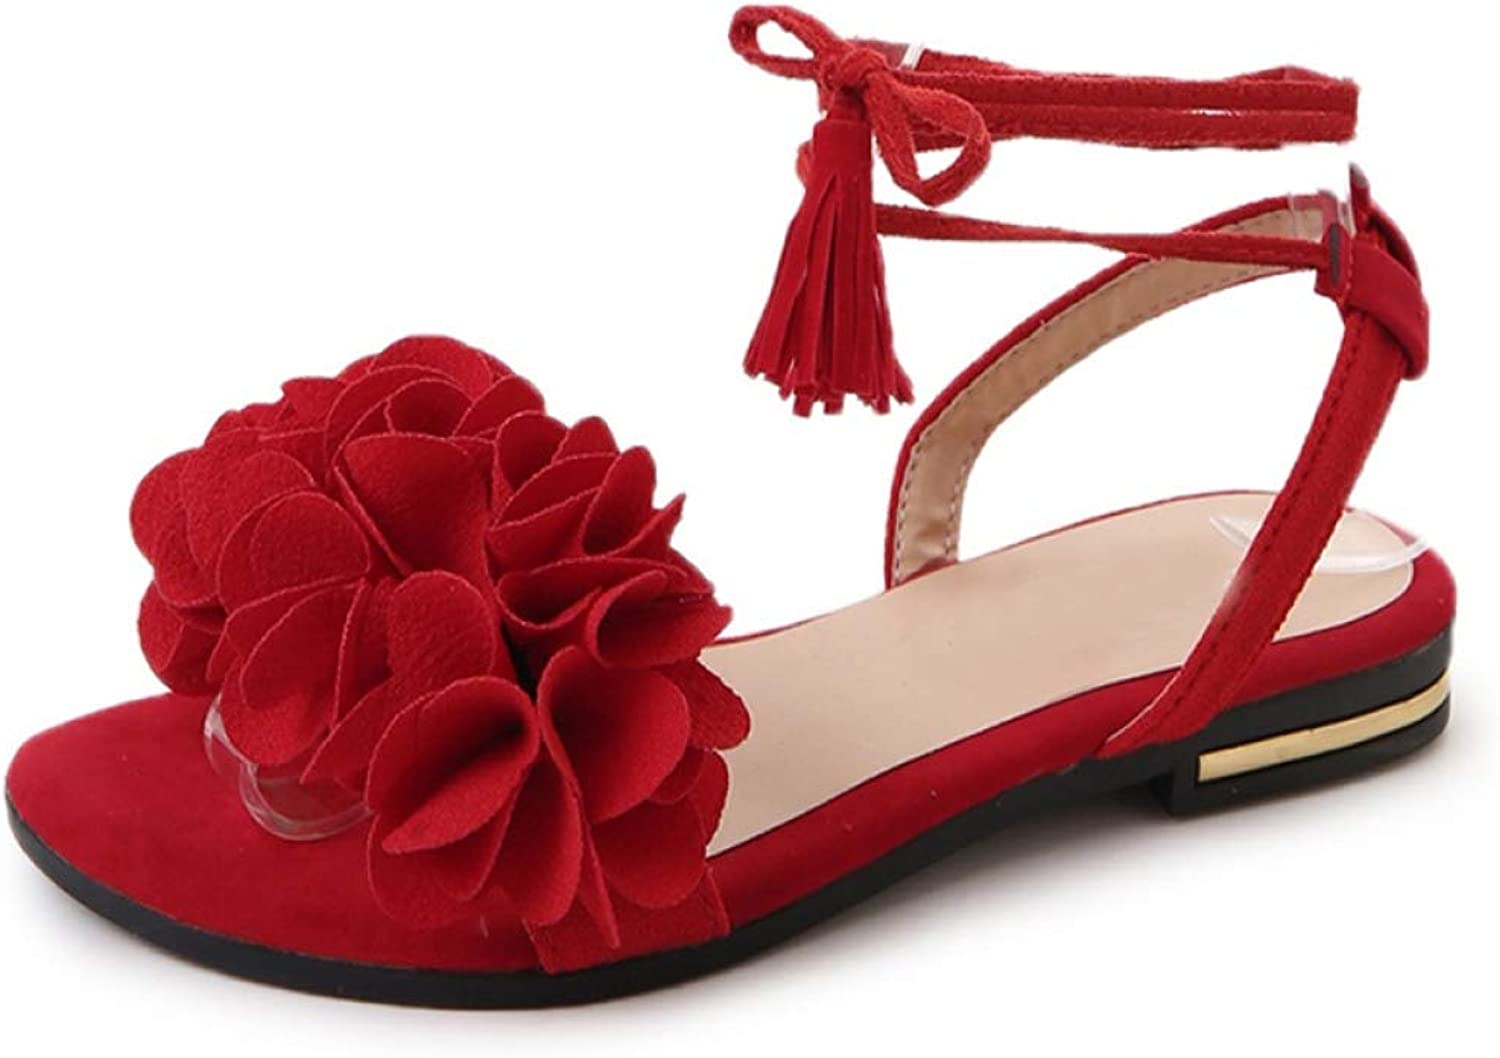 T-JULY Sandals for Women Platform Flats Casual Soft Flat shoes Flock Ruffles Lace up Open-Toe Slingback Footwear in Black Red for Summer